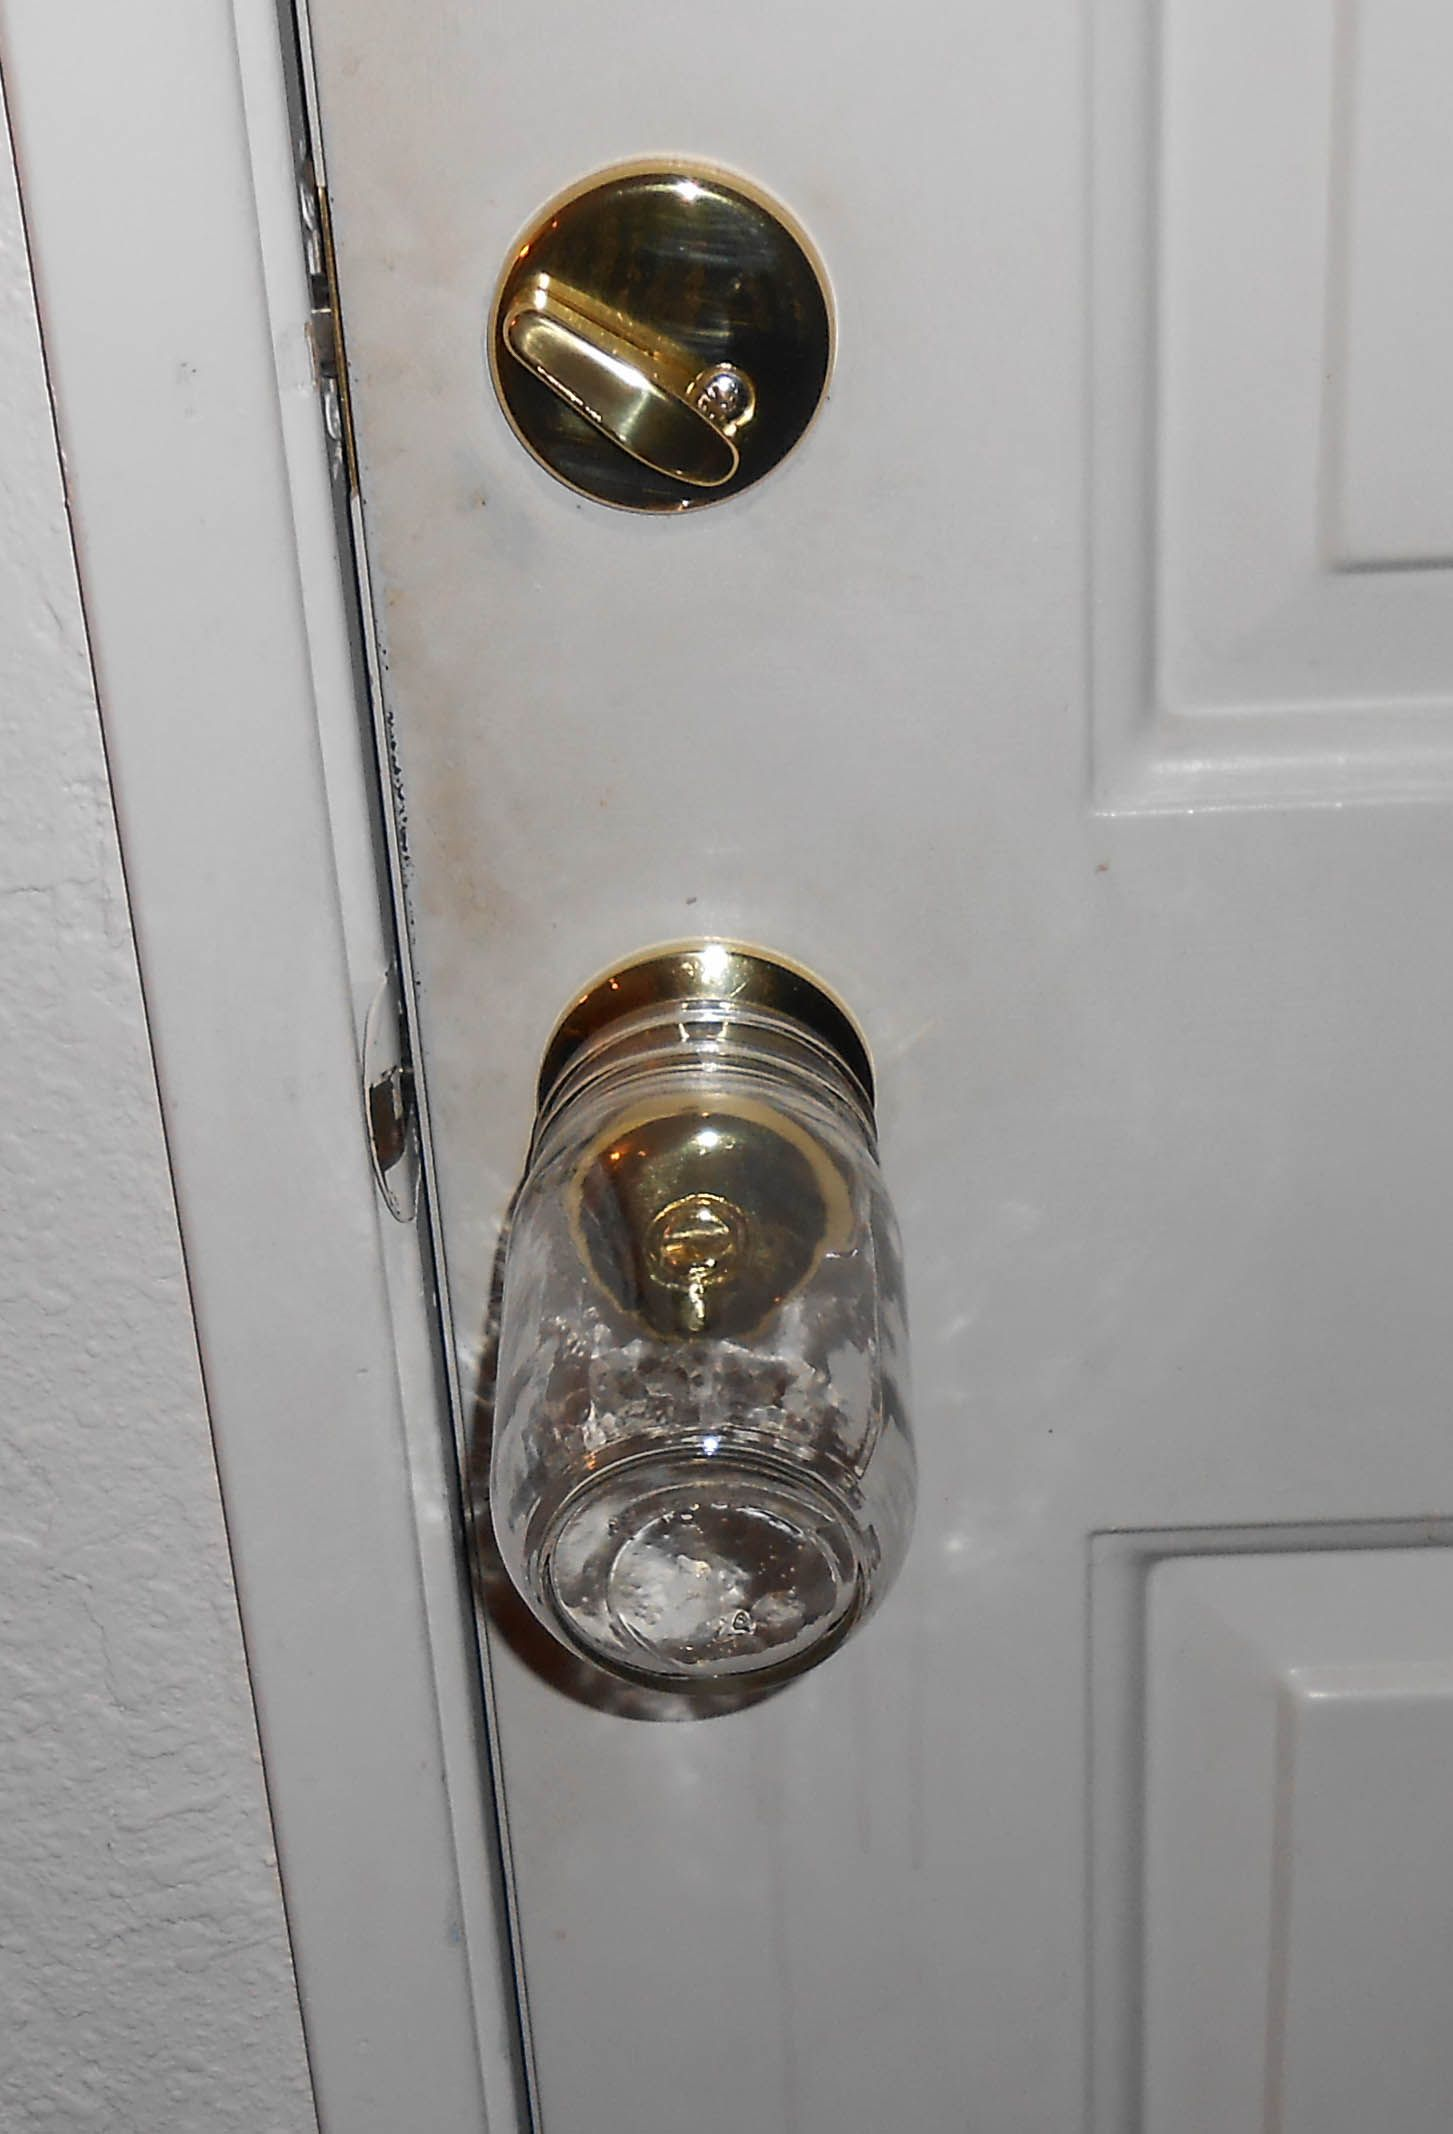 Pin By Kathleen Unger On Prepare Home Security Tips